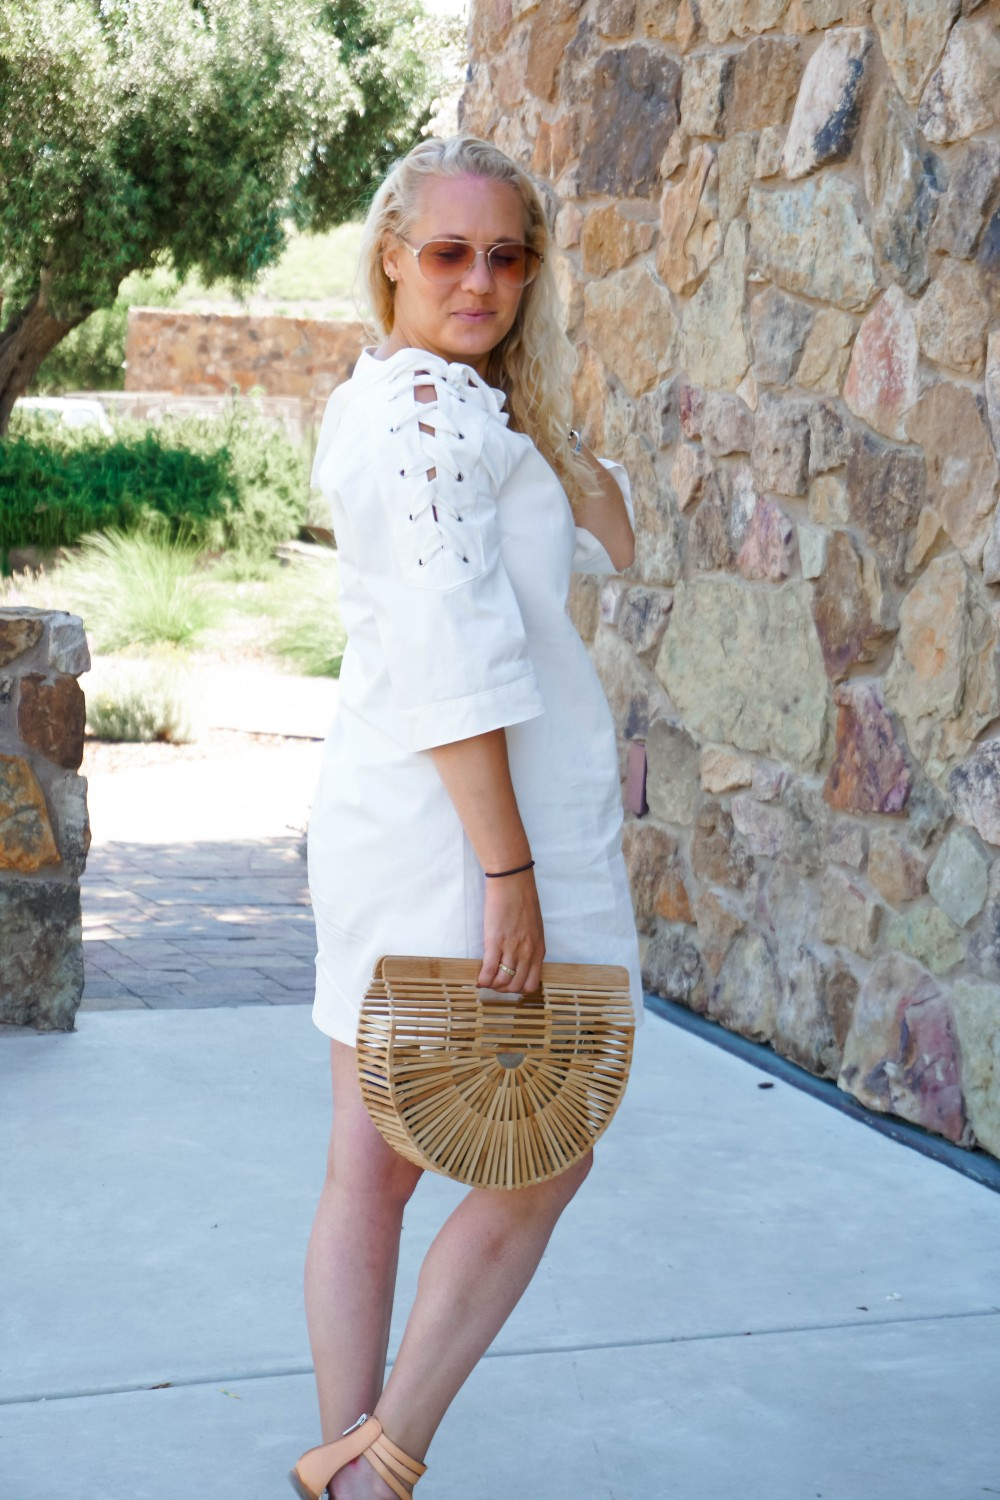 Lace-Up White Denim Dress-JOA Denim Dress-Summer Style-Bijou on the Park-Have Need Want-Outfit Inspiration-Mom Style 5